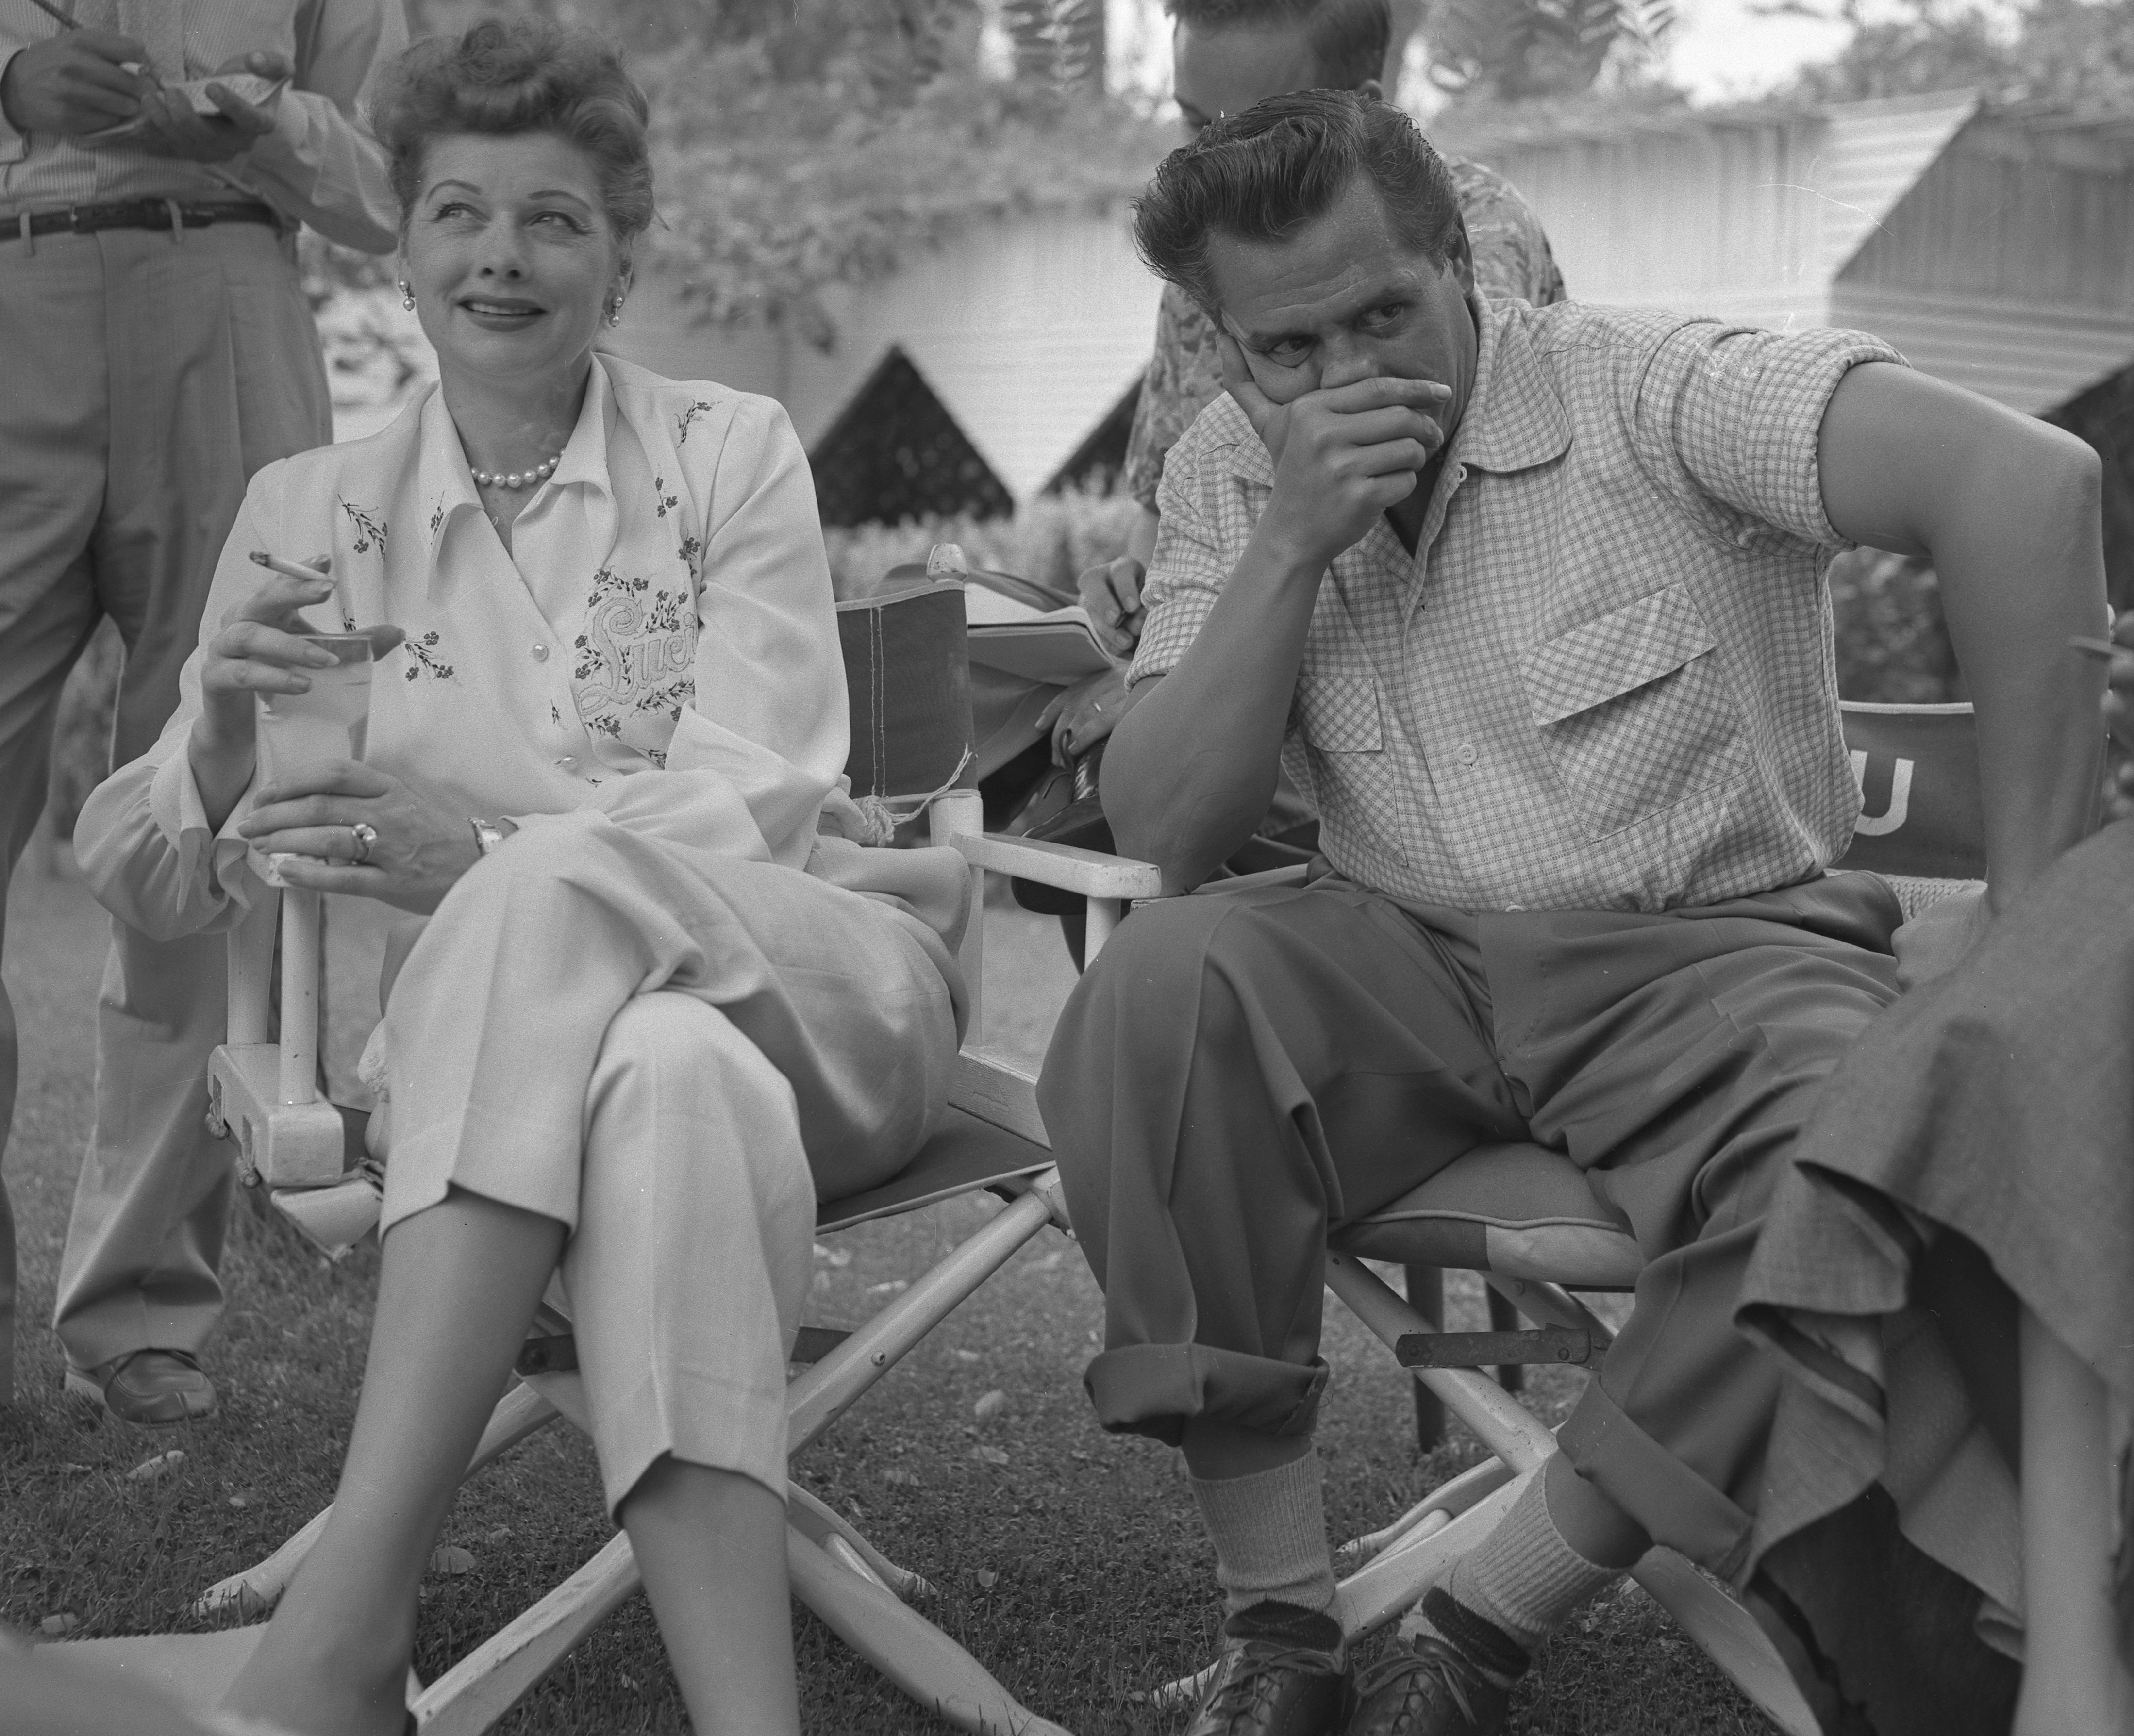 Lucille Ball and Desi Arnaz. | Source: Wikimedia Commons